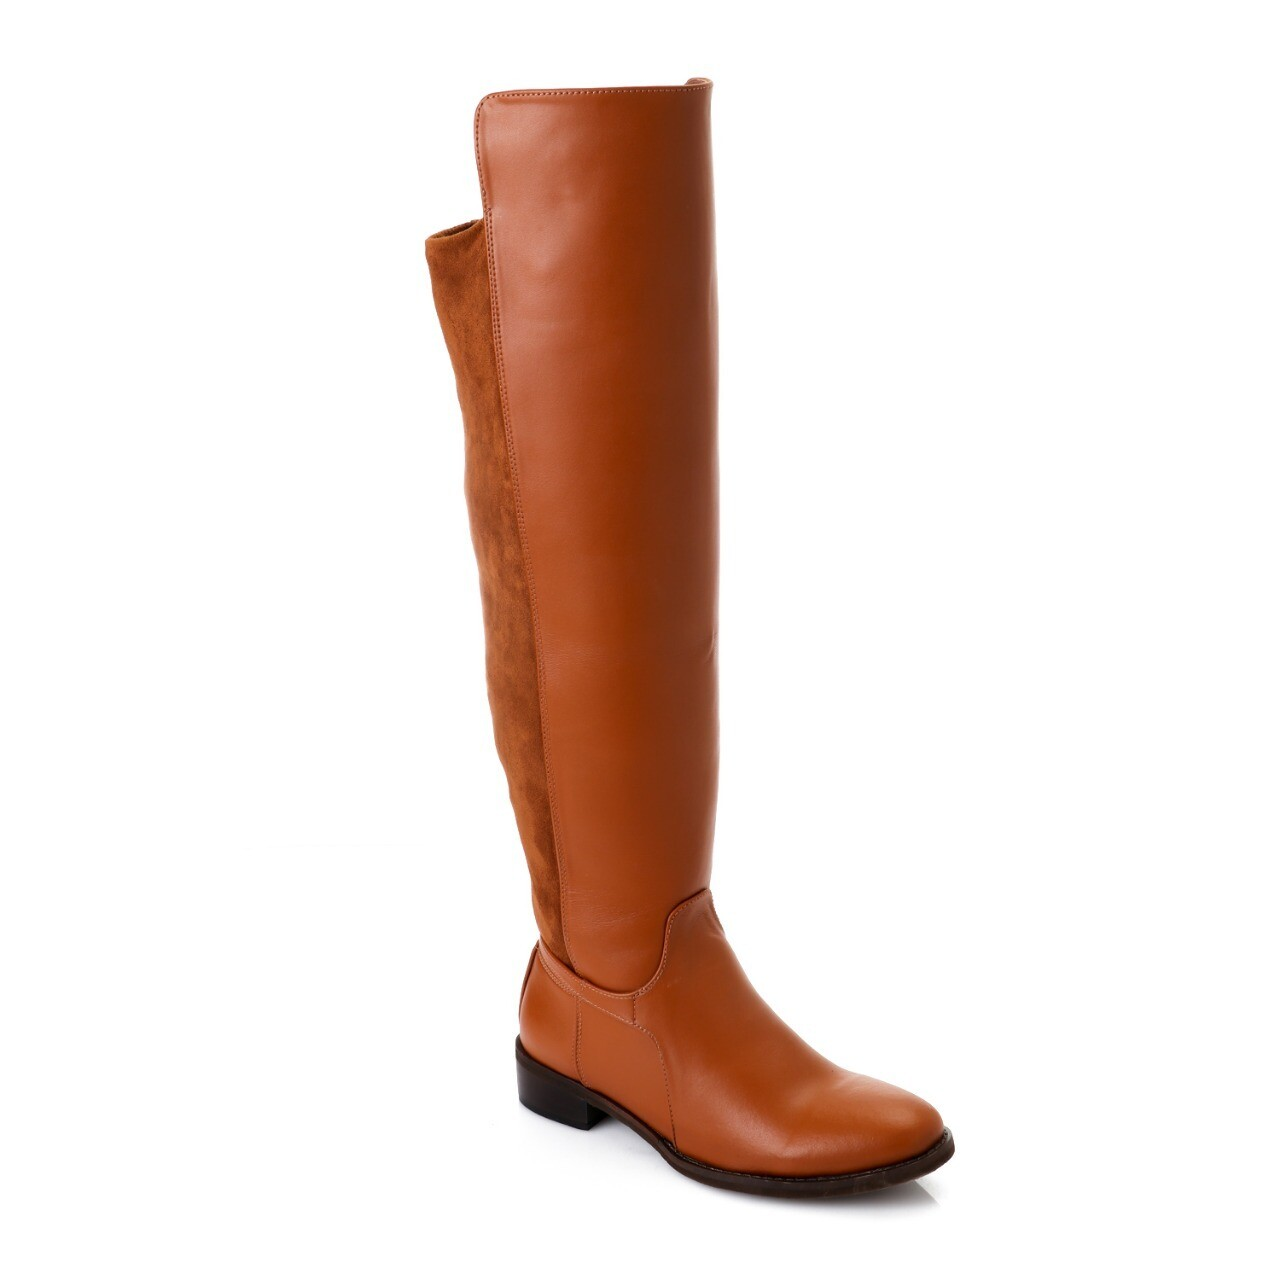 3749 Knee High Boot - Camel